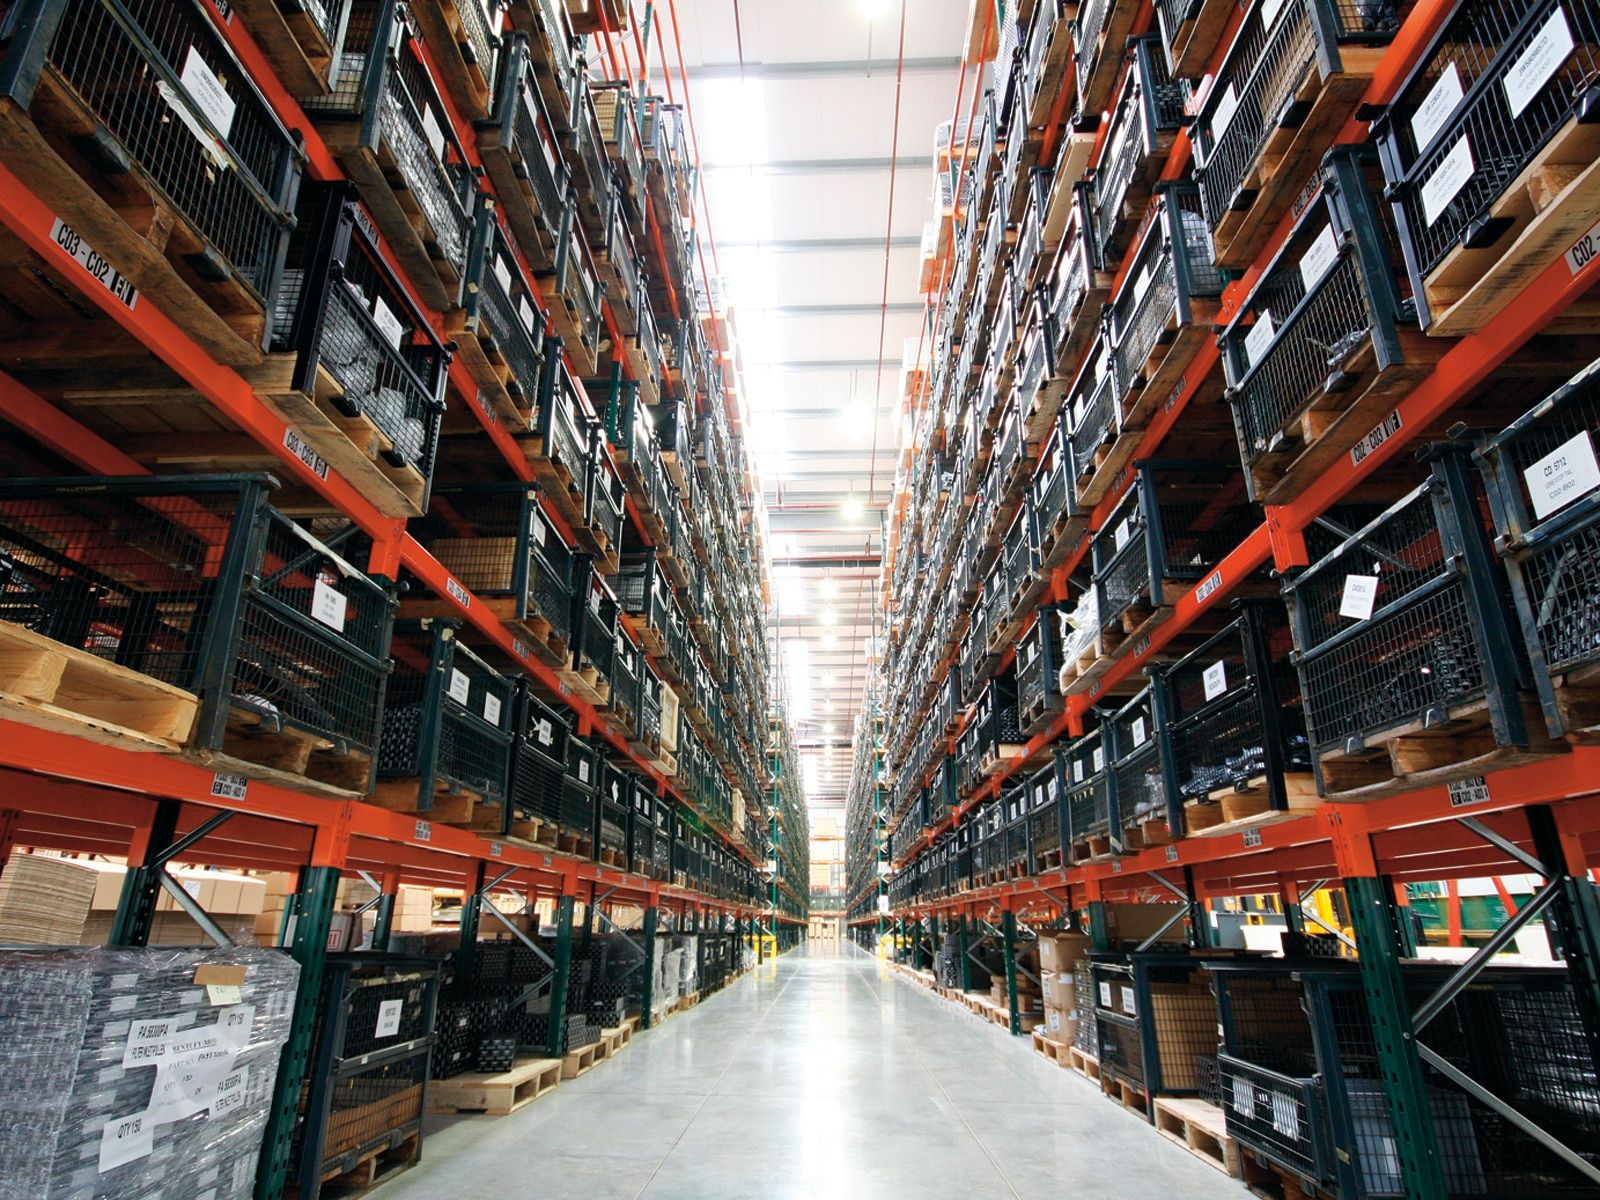 Lift Parts Warehouse is one of the top online lift parts and accessories distributors in the North America. We sell an extensive selection of parts and accessories for forklifts, scissor lifts, .